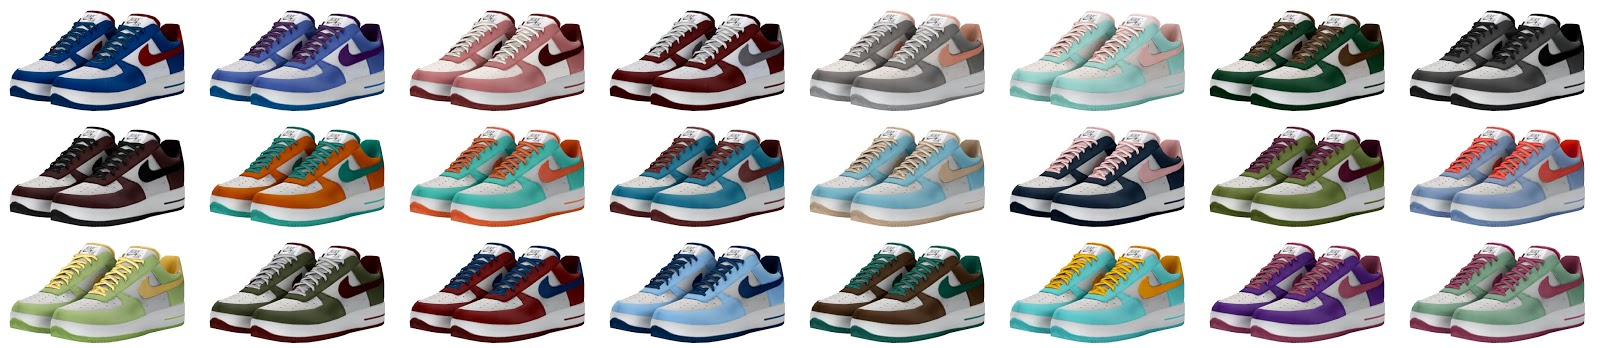 Sims 4 cc: Nike air force one for kids and toddlers